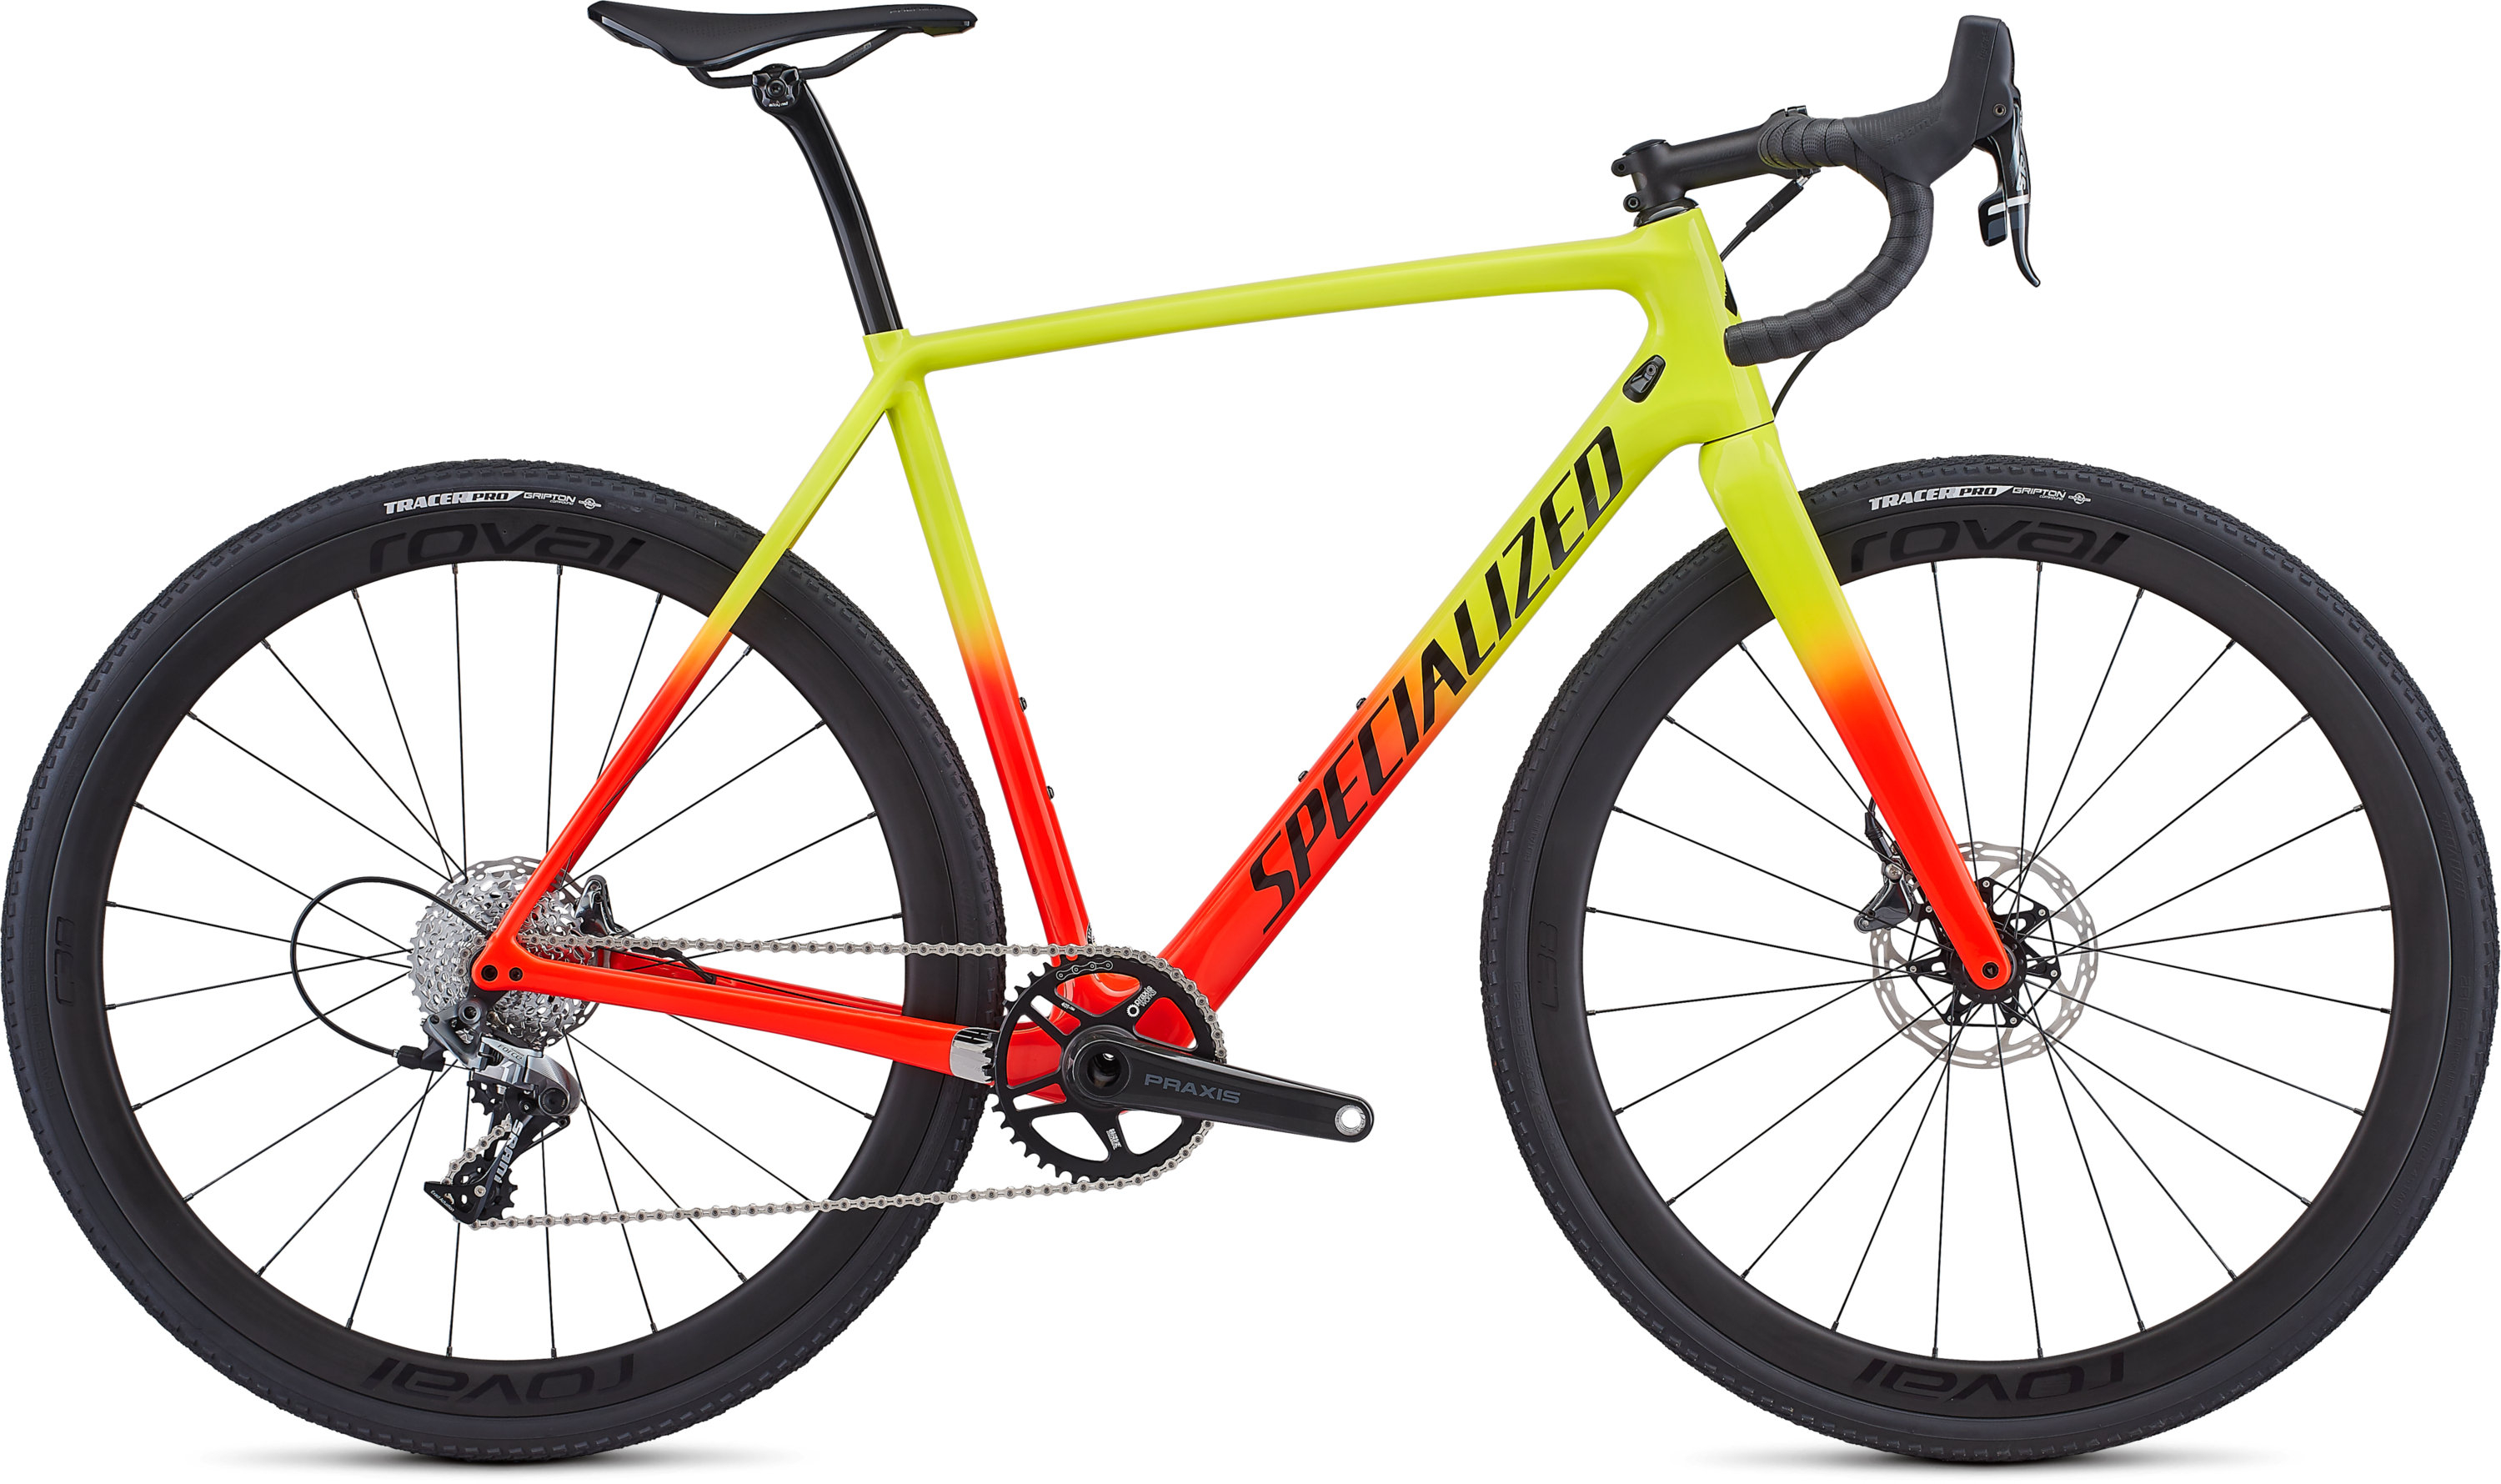 Gloss Team Yellow/Rocket Red/Tarmac Black/Clean